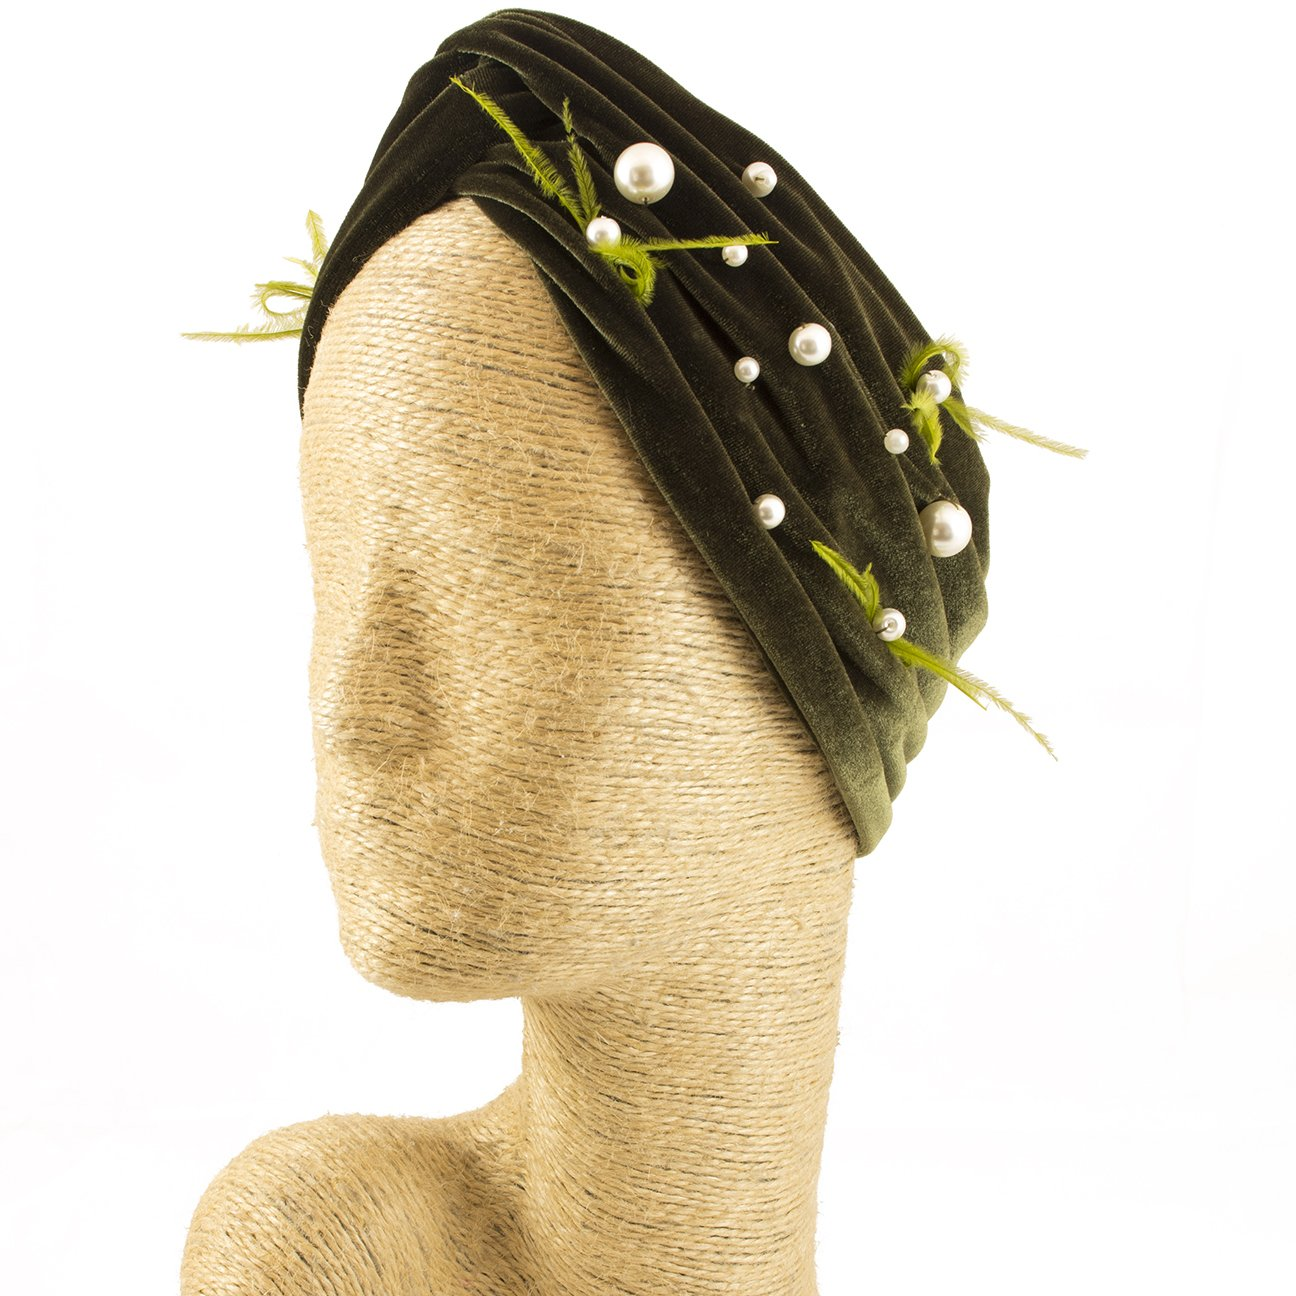 Fascinator, Velvet Headbands, Millinery, Worldwide Free Shipment, Delivery in 2 Days, Customized Tailoring, Designer Fashion, Pearl, Head wrap, Boho Accessories, Green, Beaded Headbands, Jewelled